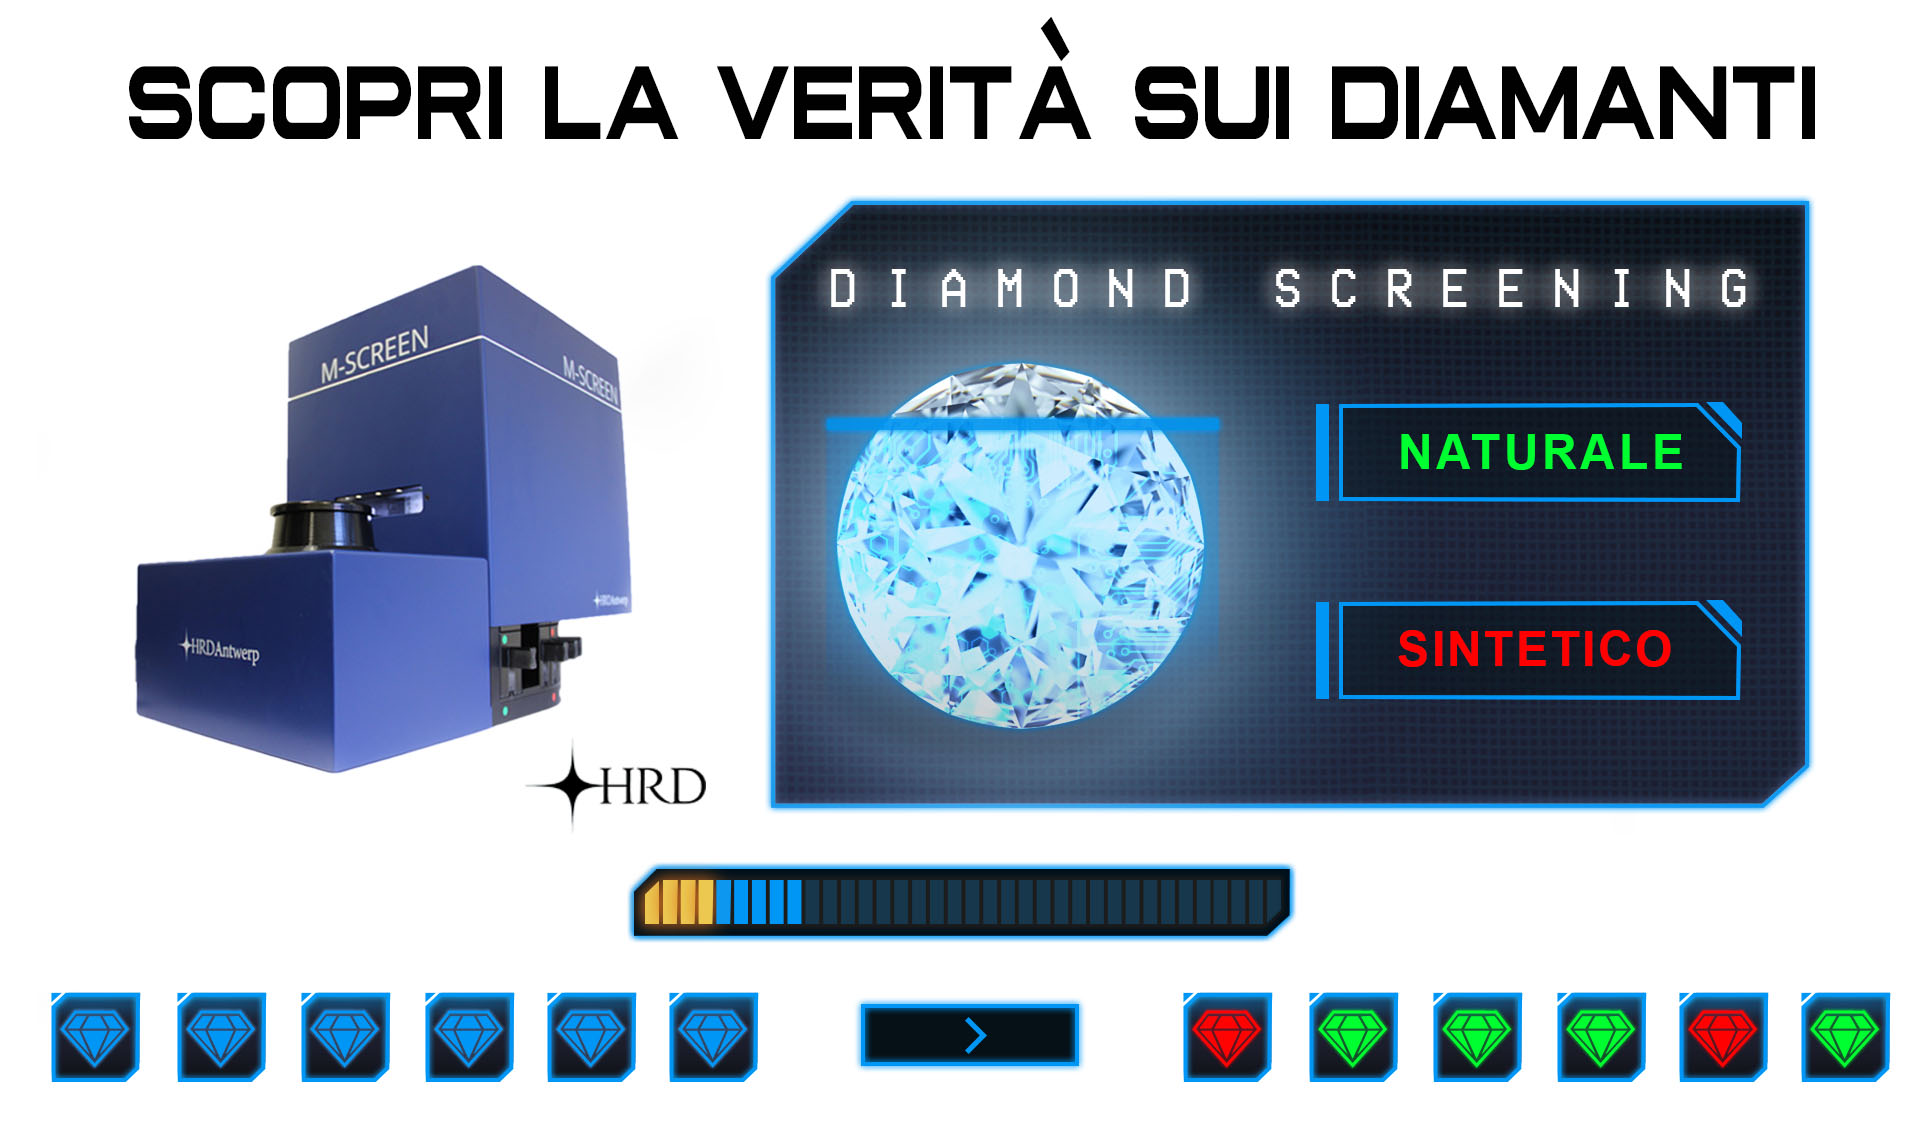 Natural-diamonds-screening-is-now-reality